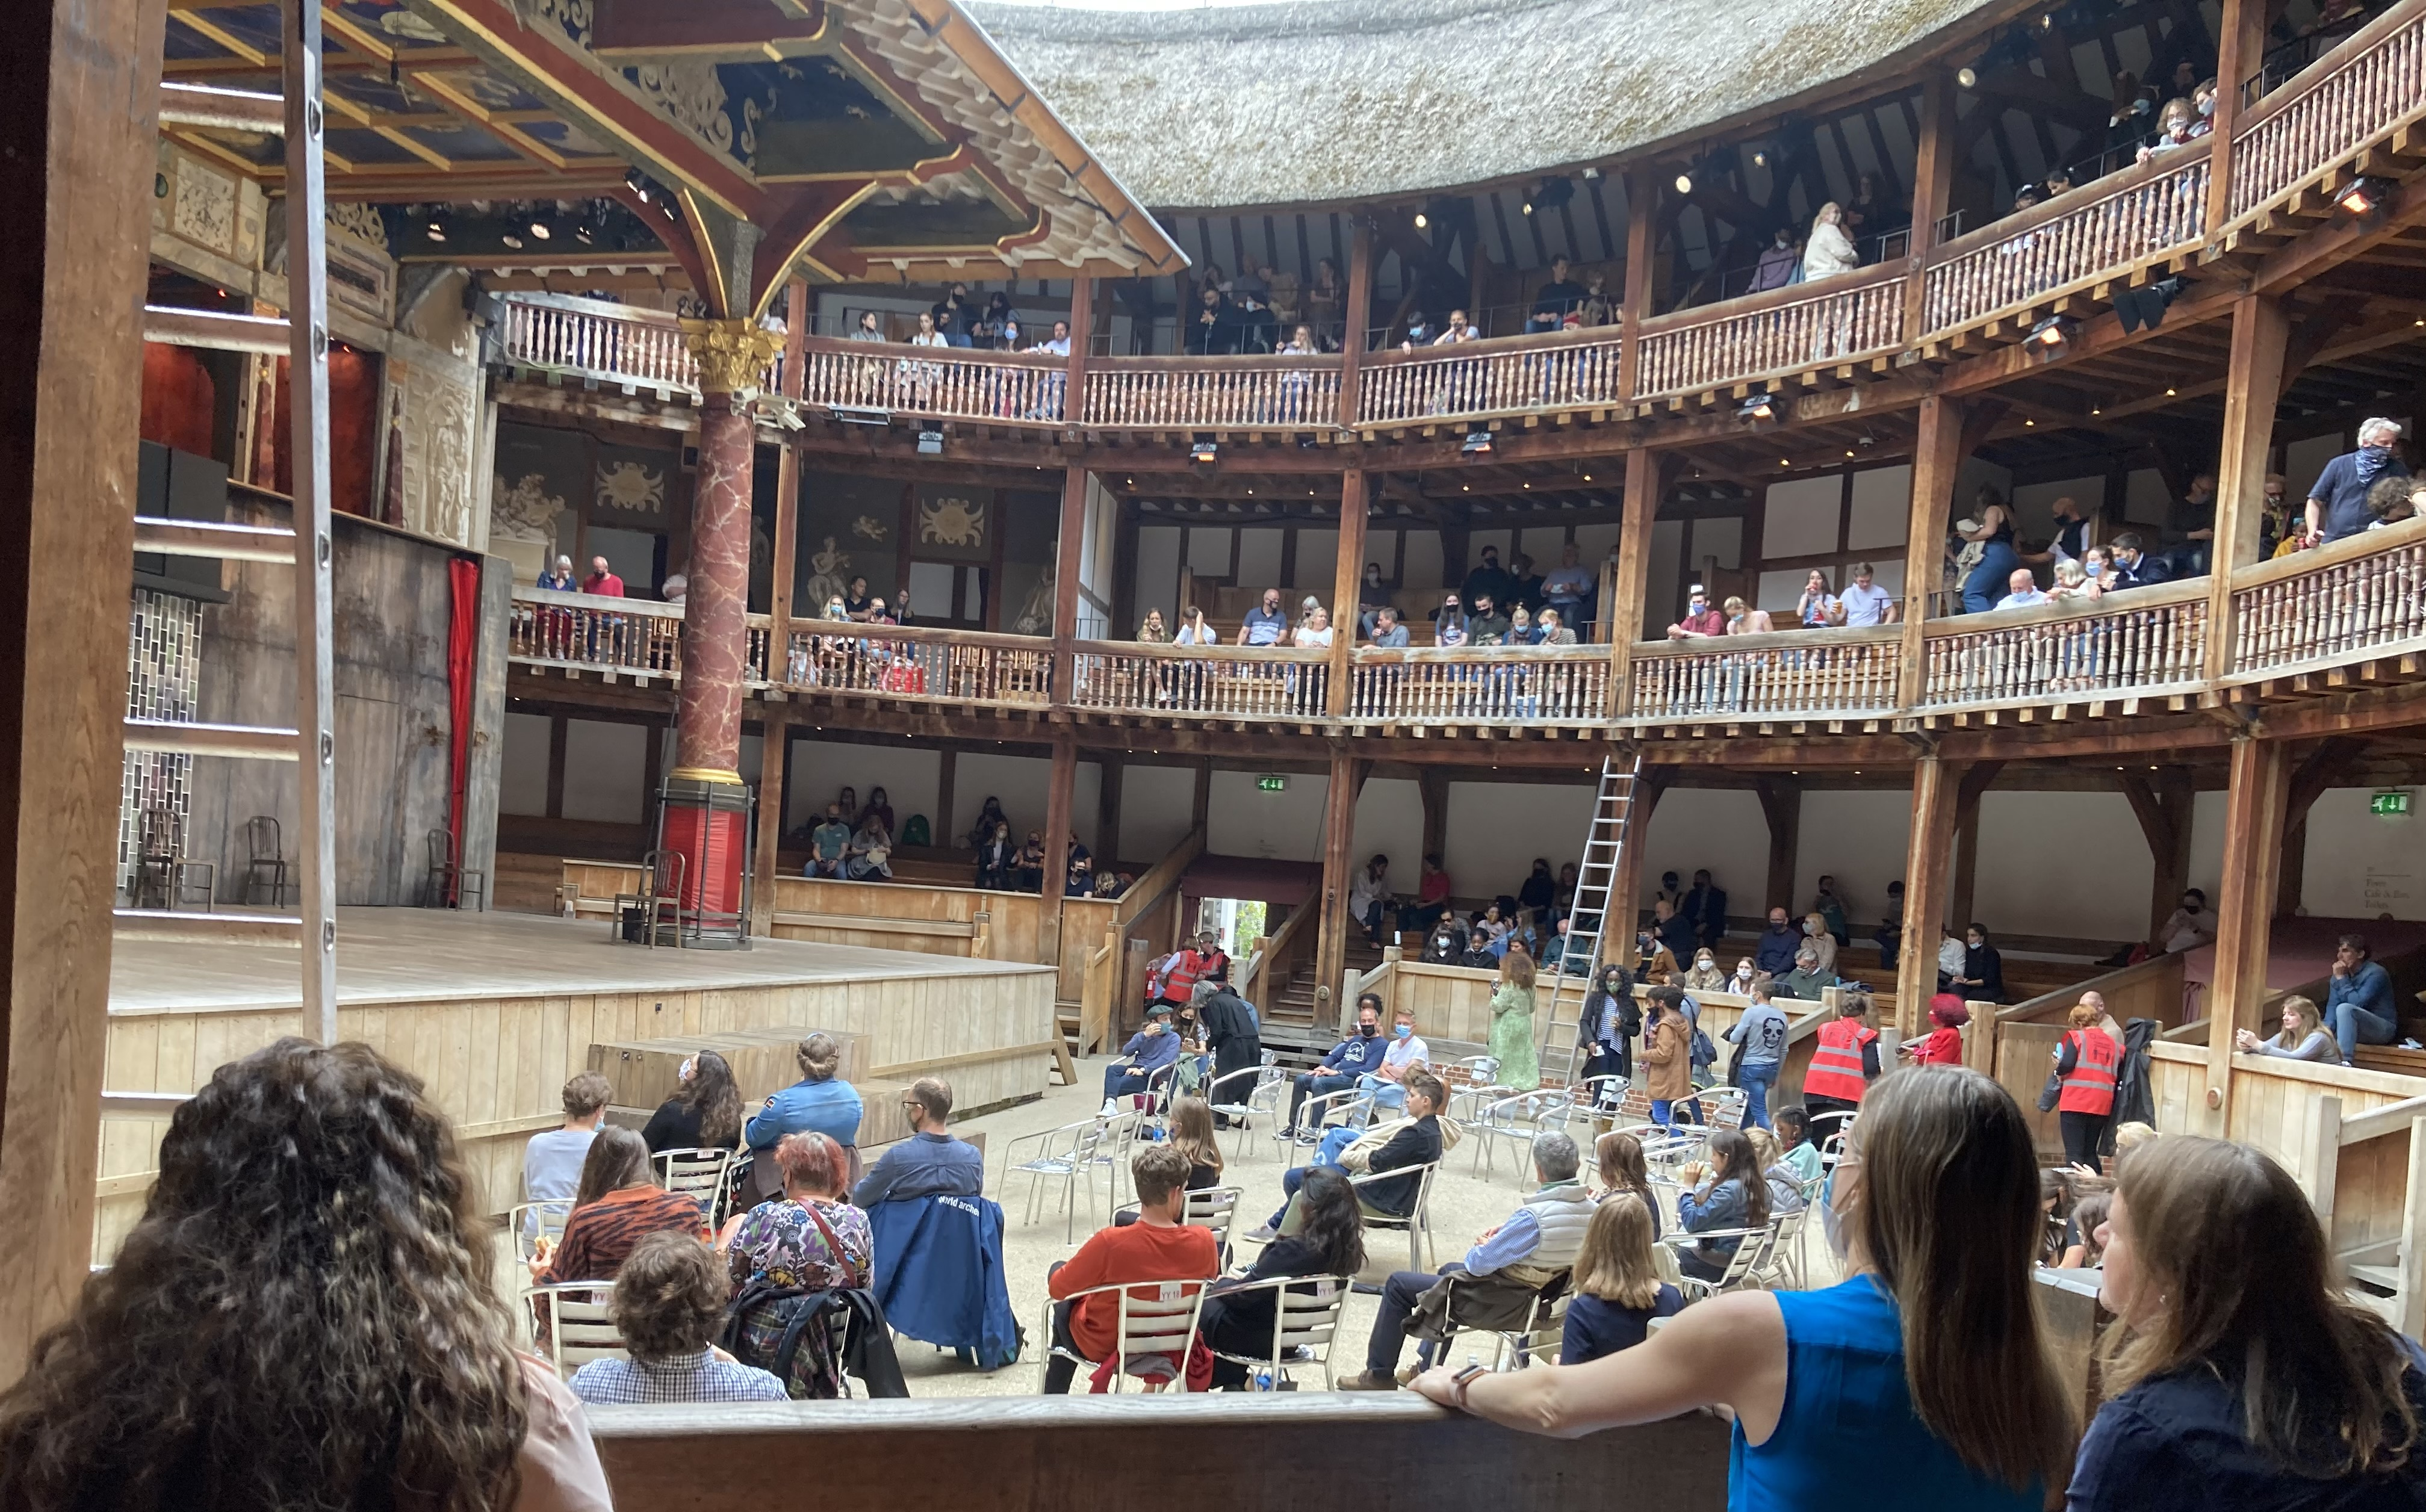 Inside view of Shakespeare's Globe Theatre.